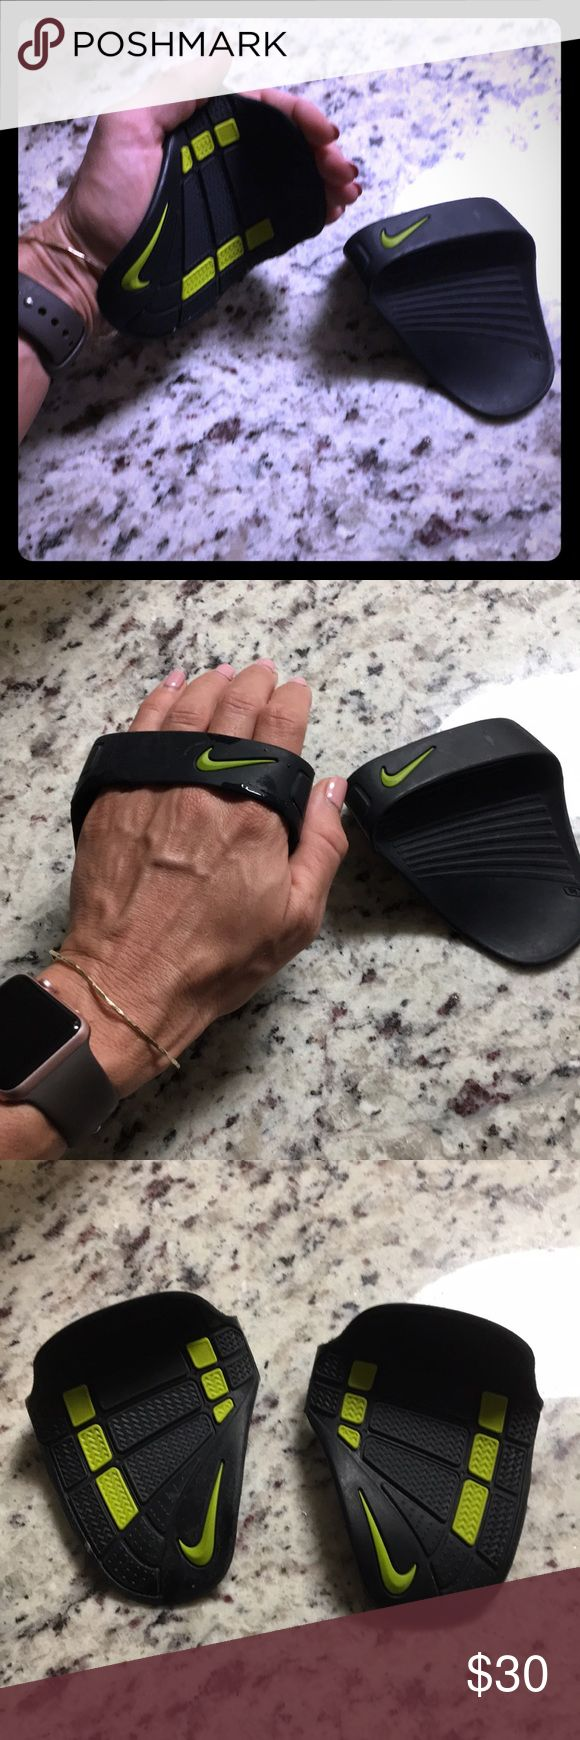 Nike Rubber Weight lifting Gloves • OS New Nike weight lifting gloves. One size. Rubber/ plastic Nike Accessories Gloves & Mittens